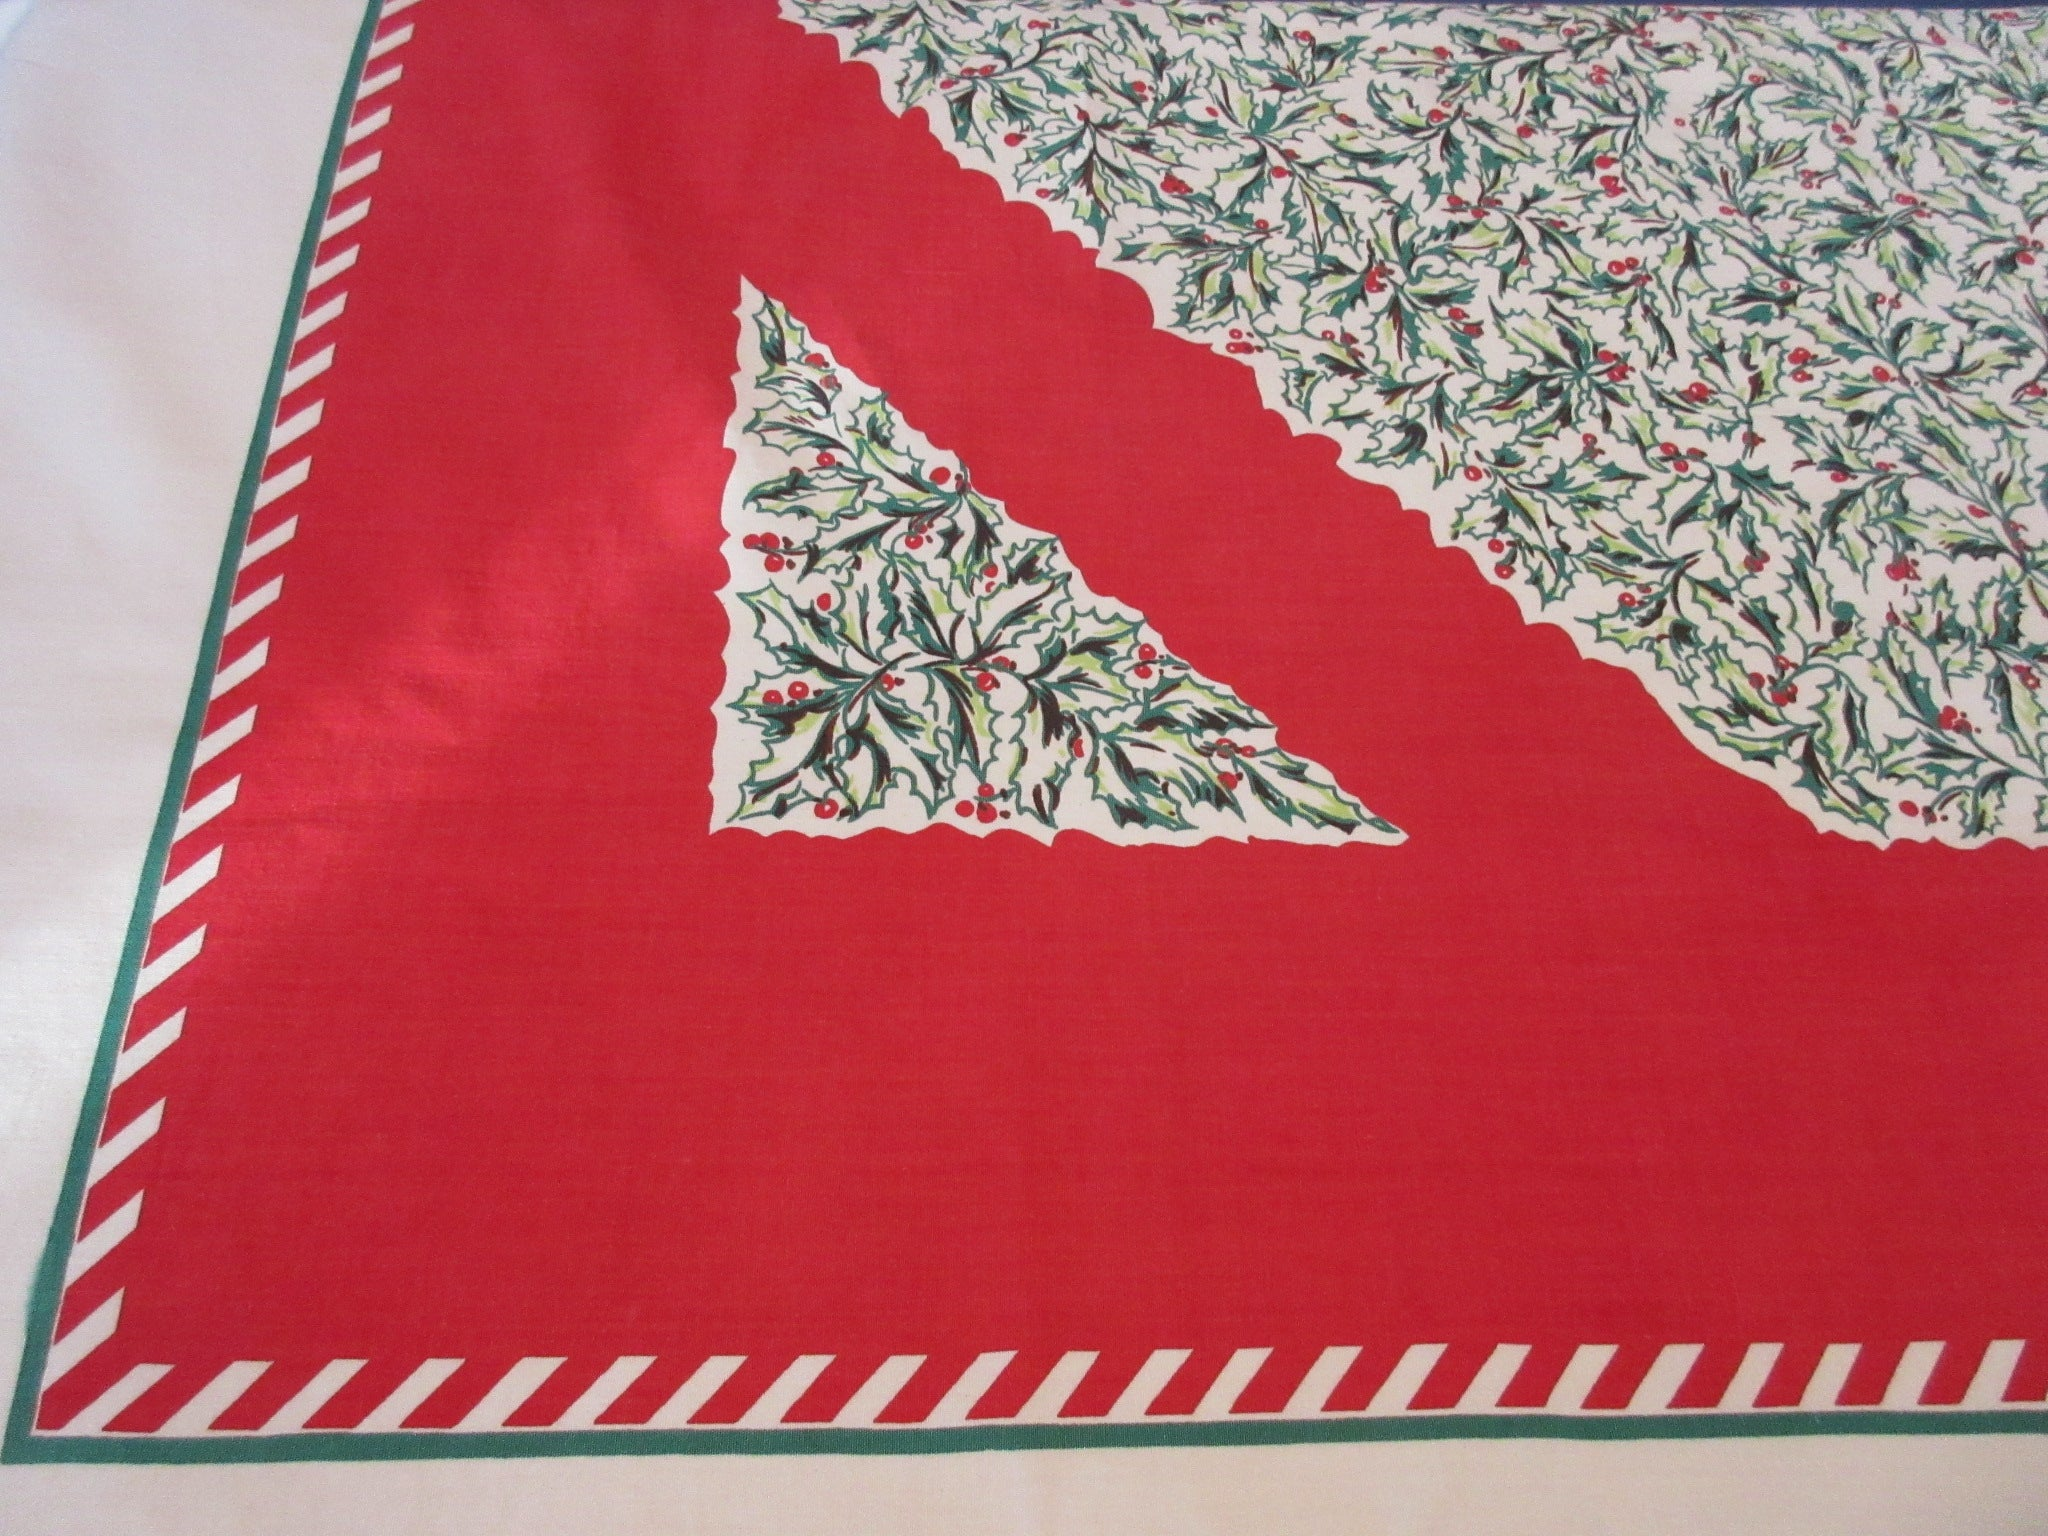 Stunning Green Holly on Red Christmas Novelty Vintage Printed Tablecloth (70 X 56)